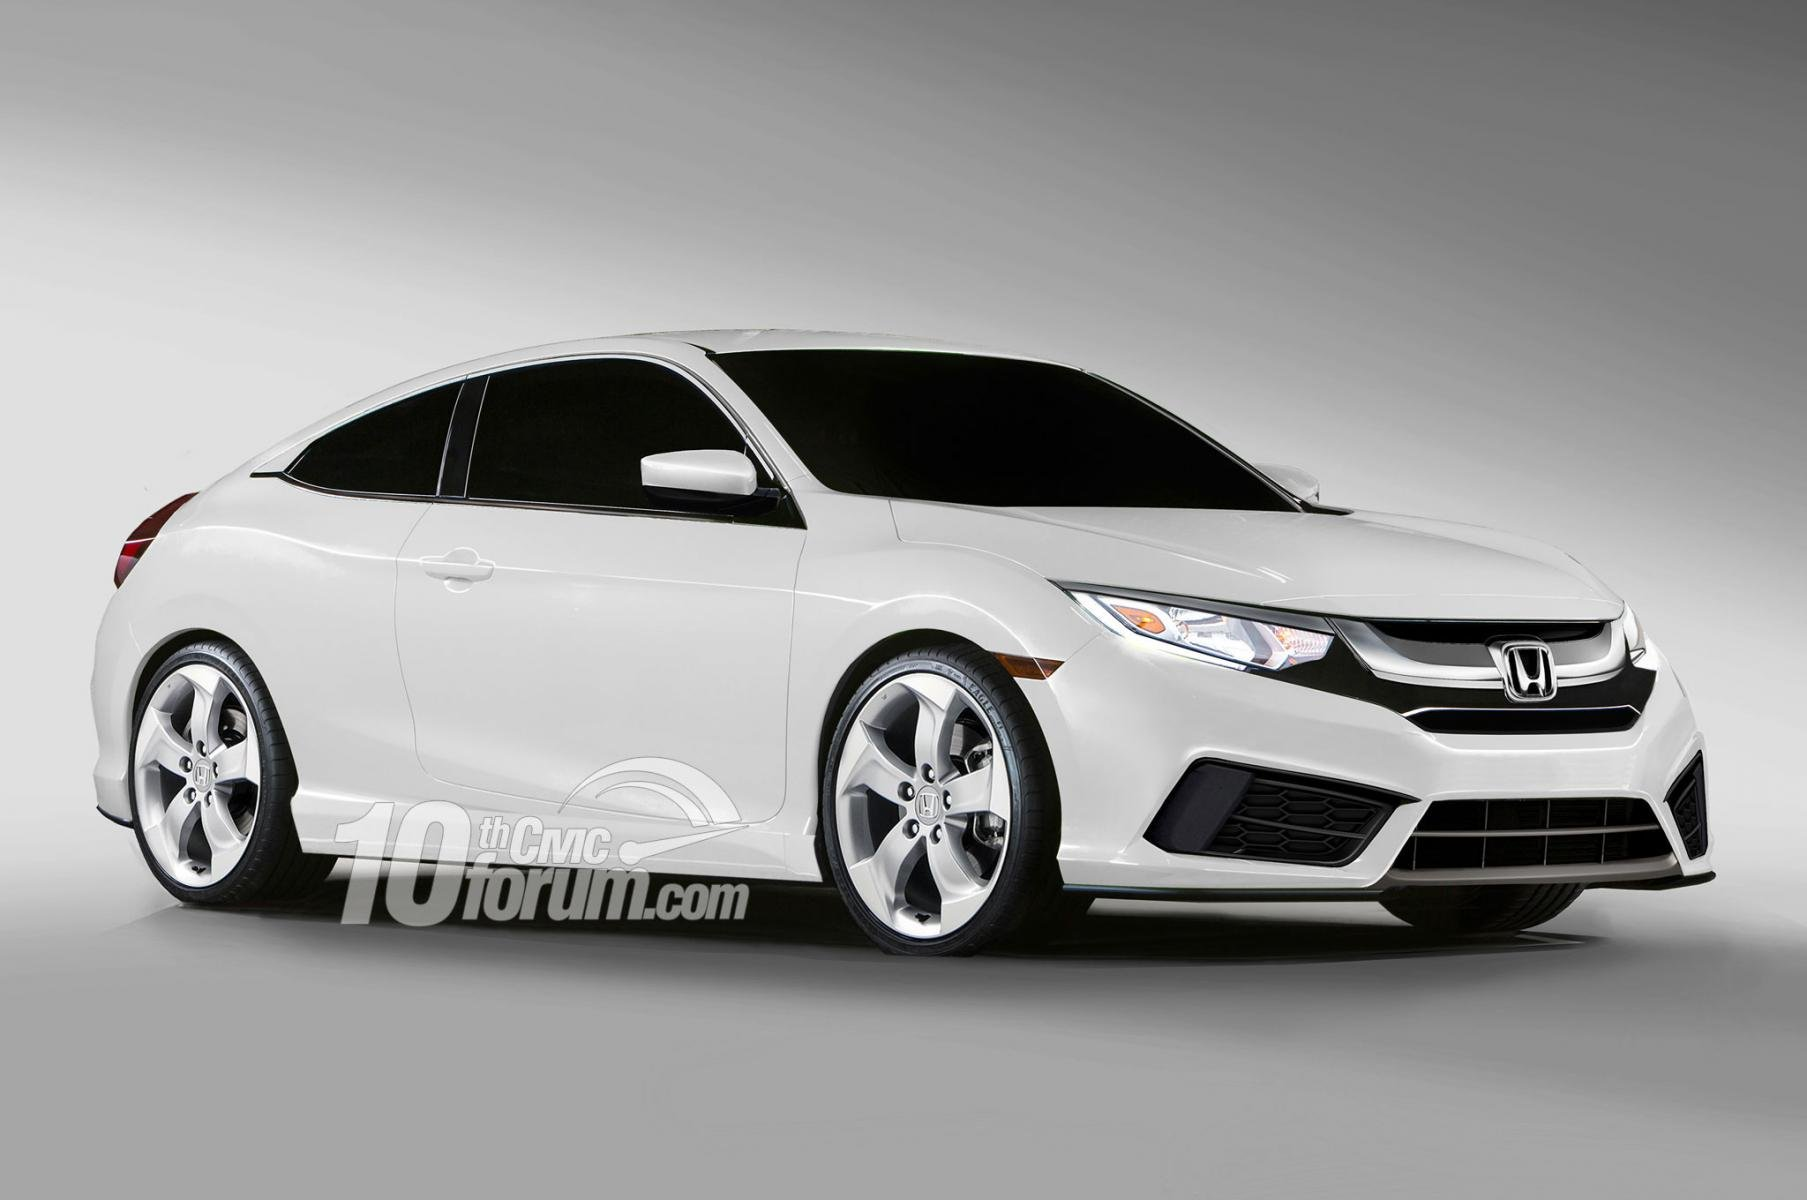 2016 honda civic sedan coupe hatchback renders leaked 10th gen civic forum. Black Bedroom Furniture Sets. Home Design Ideas